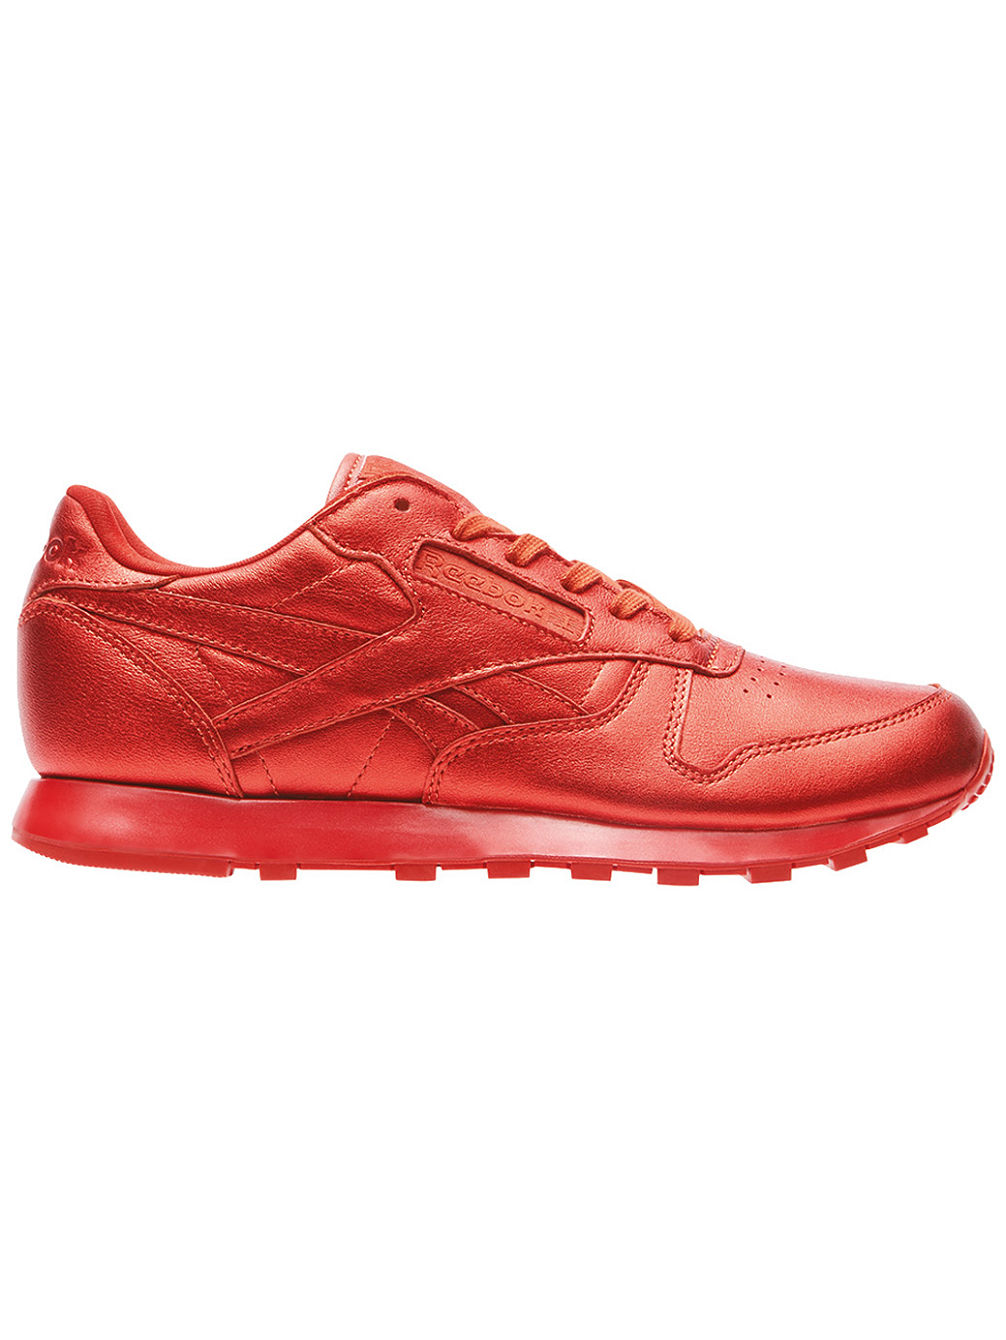 reebok-classic-leather-face-fashion-sneakers-women